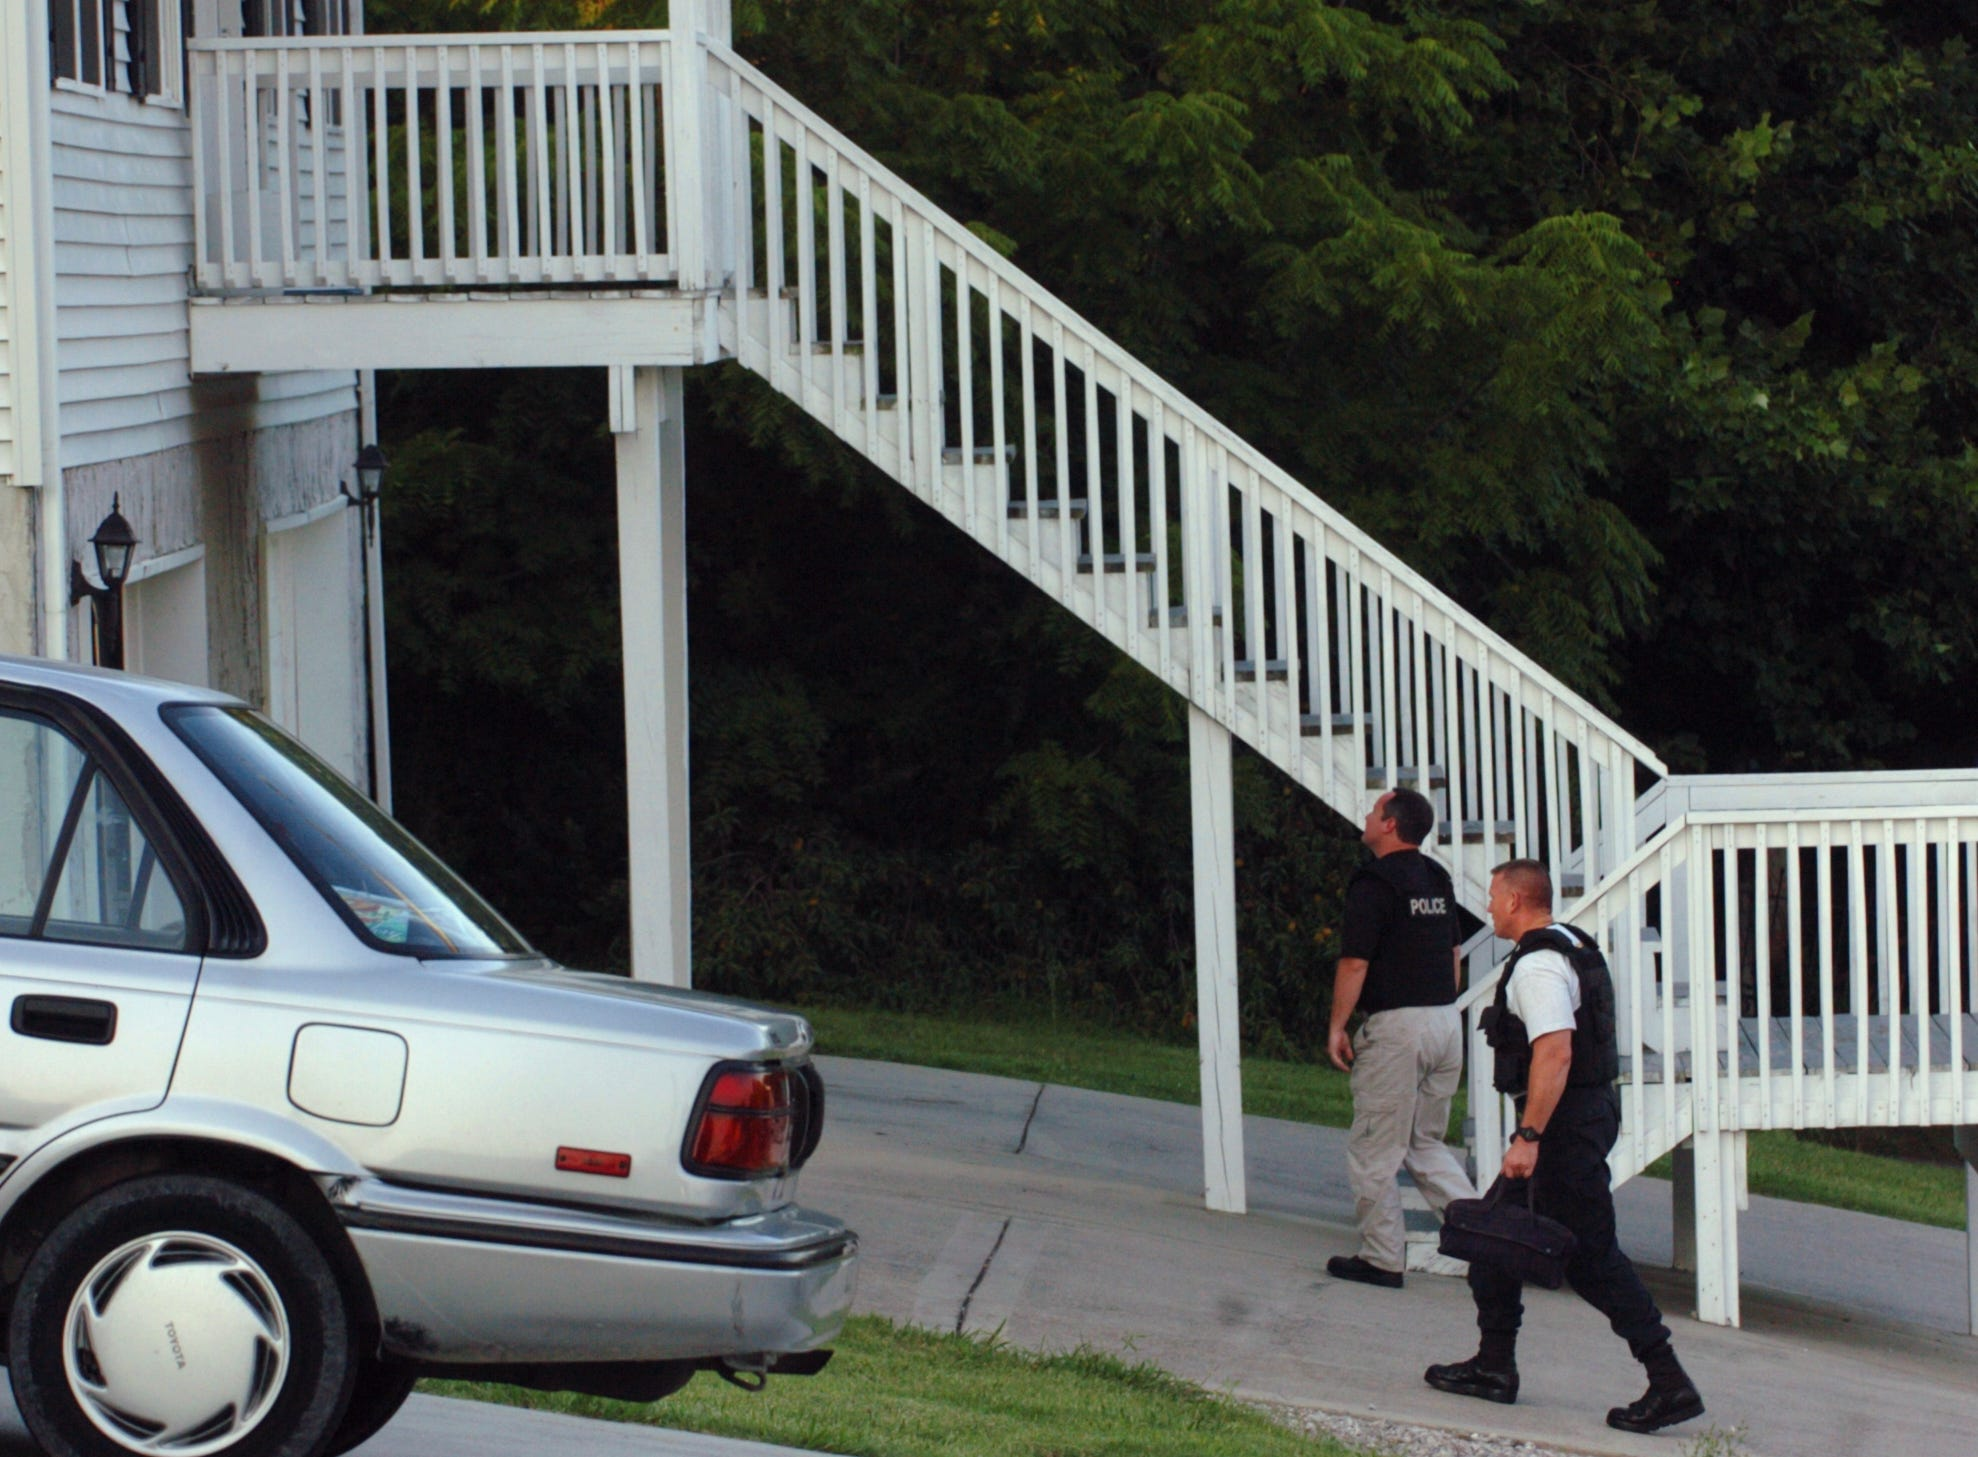 Knoxville Police Dept and FBU investigators arrive Sunday, July 27, 2008, at the home of church shooting suspect Jim Adkisson in Knoxville, TN.